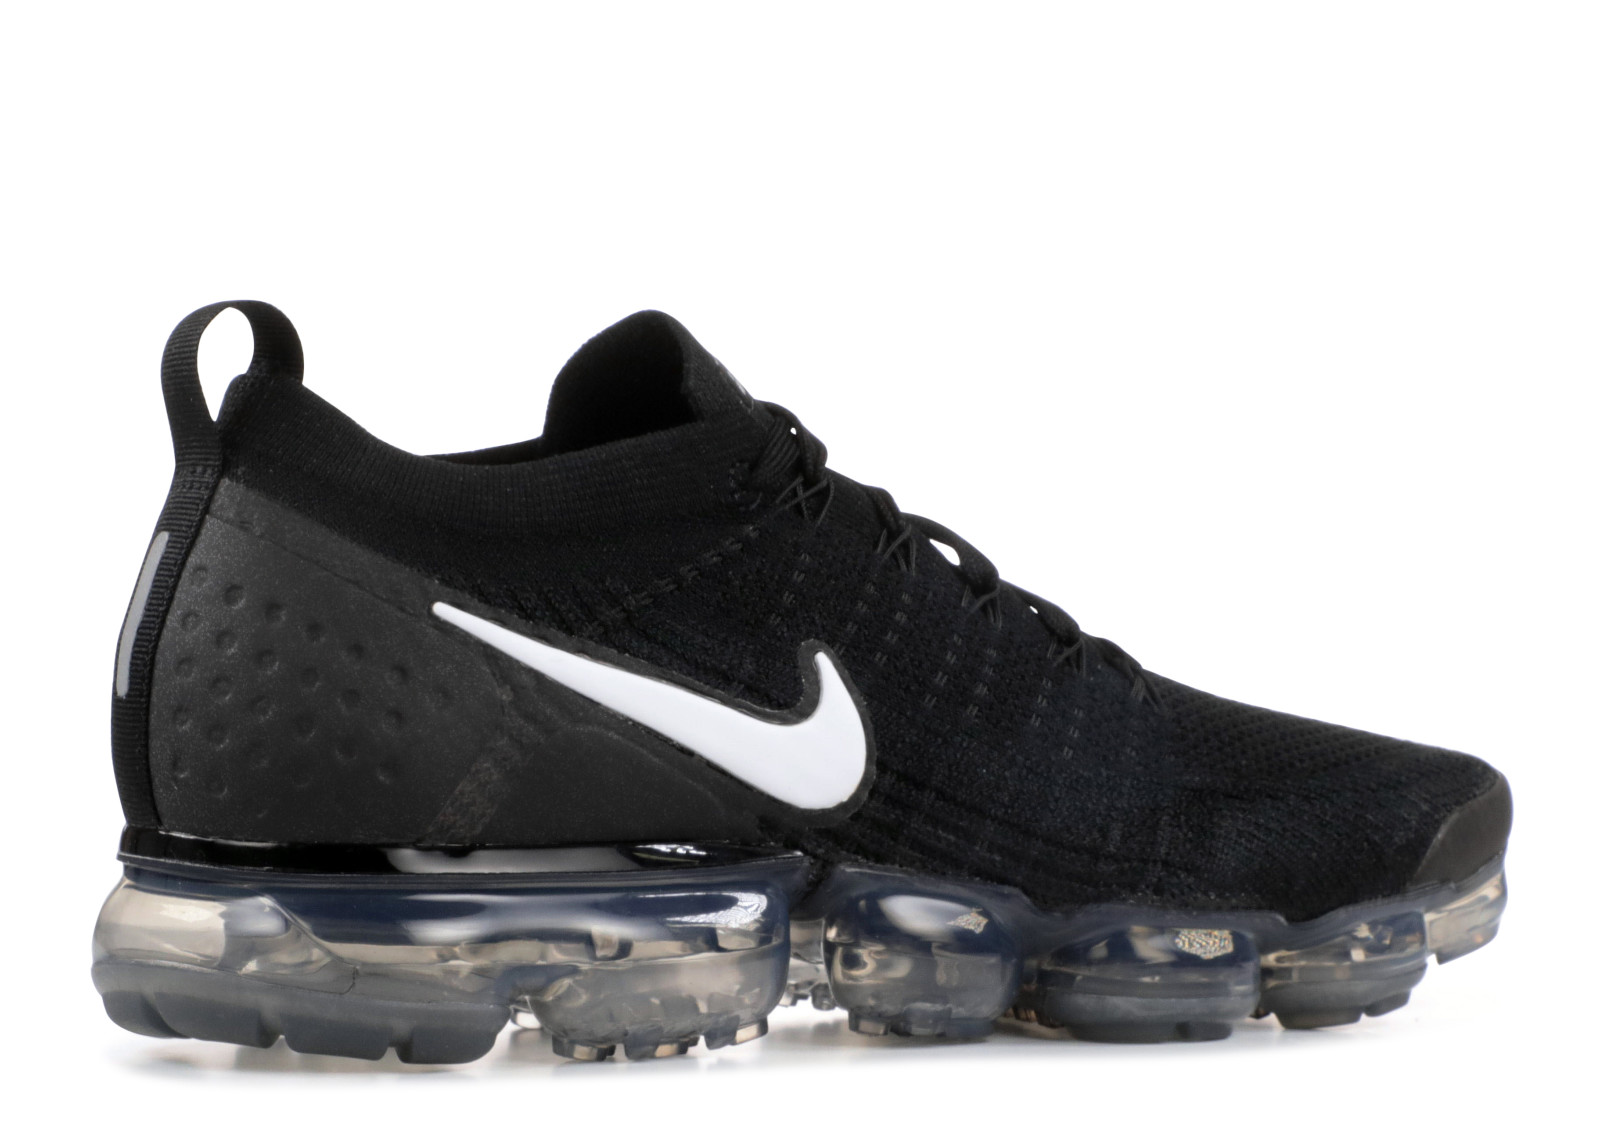 promo code 01842 17cb2 Nike Air Vapormax Flyknit 2 Black-White-Dark Grey